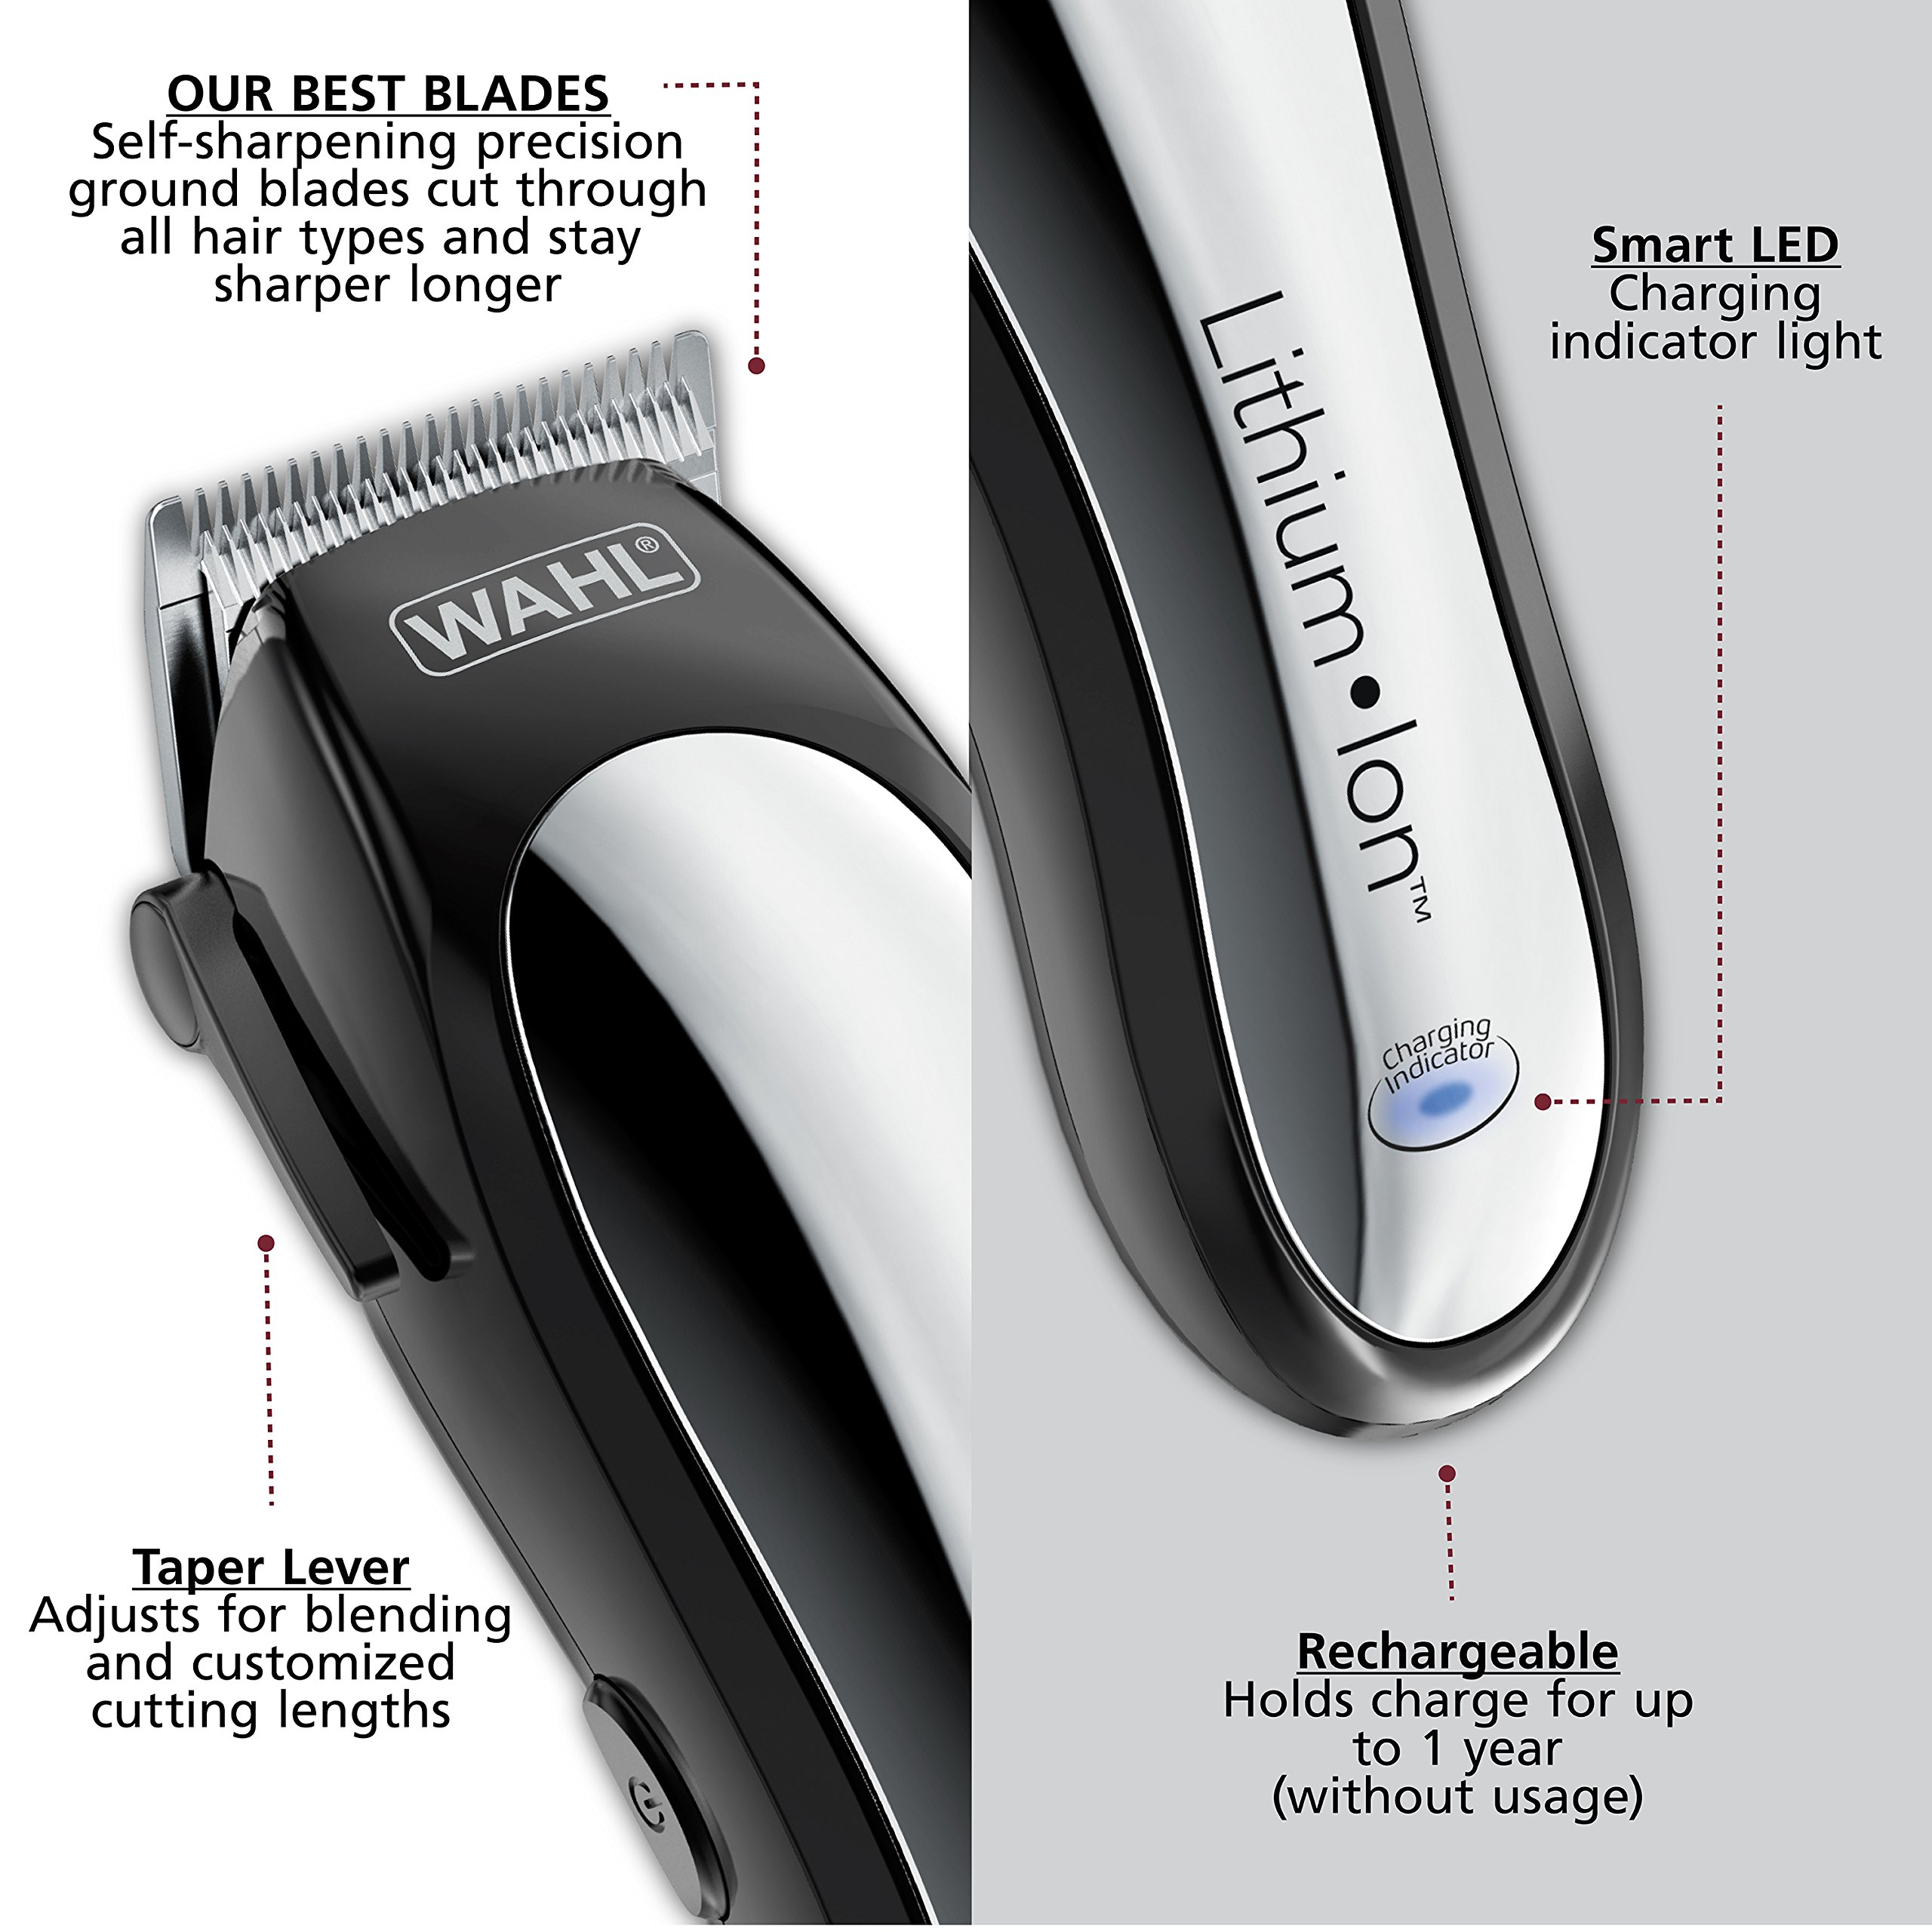 Wahl Power Cord For Wahl Clipper 3 Wire Power Cord